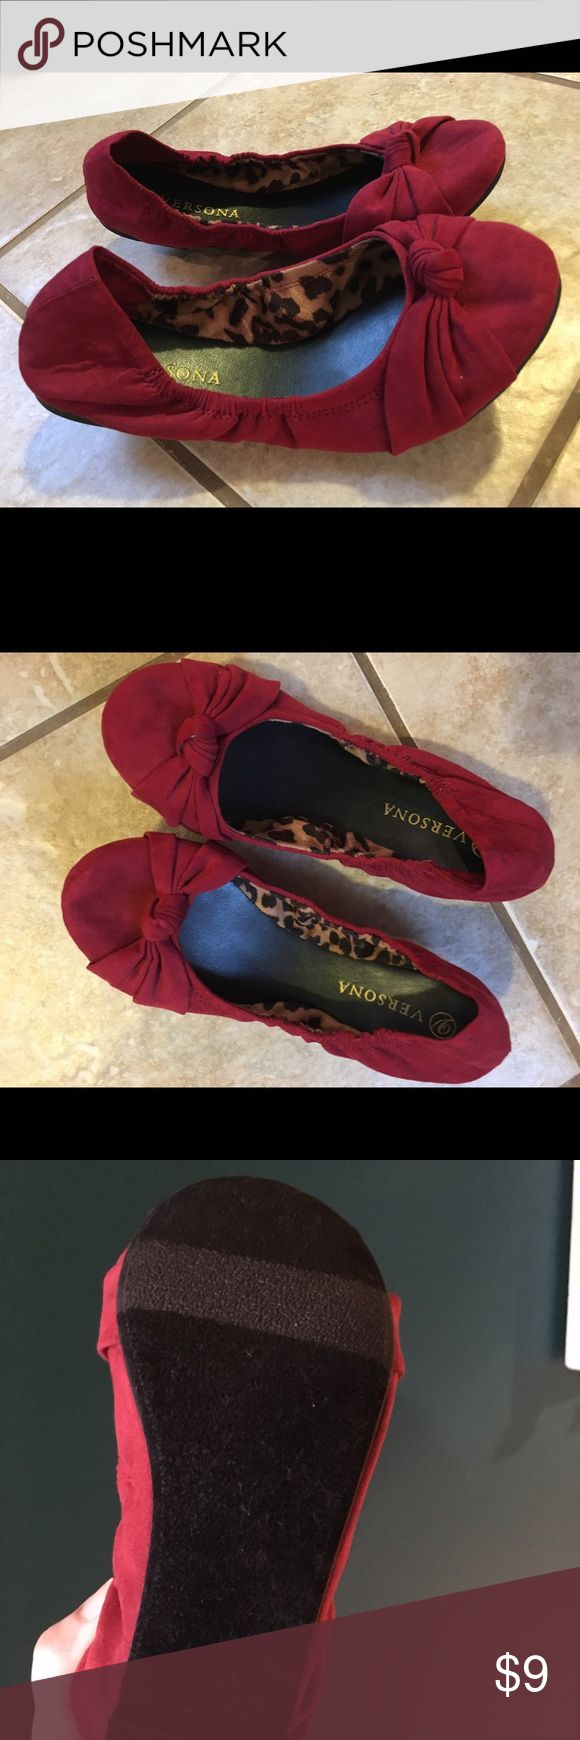 Red ballet flats Red ballet flats from versona. Never worn outside. Practically new. Size 8. Shoes Flats & Loafers